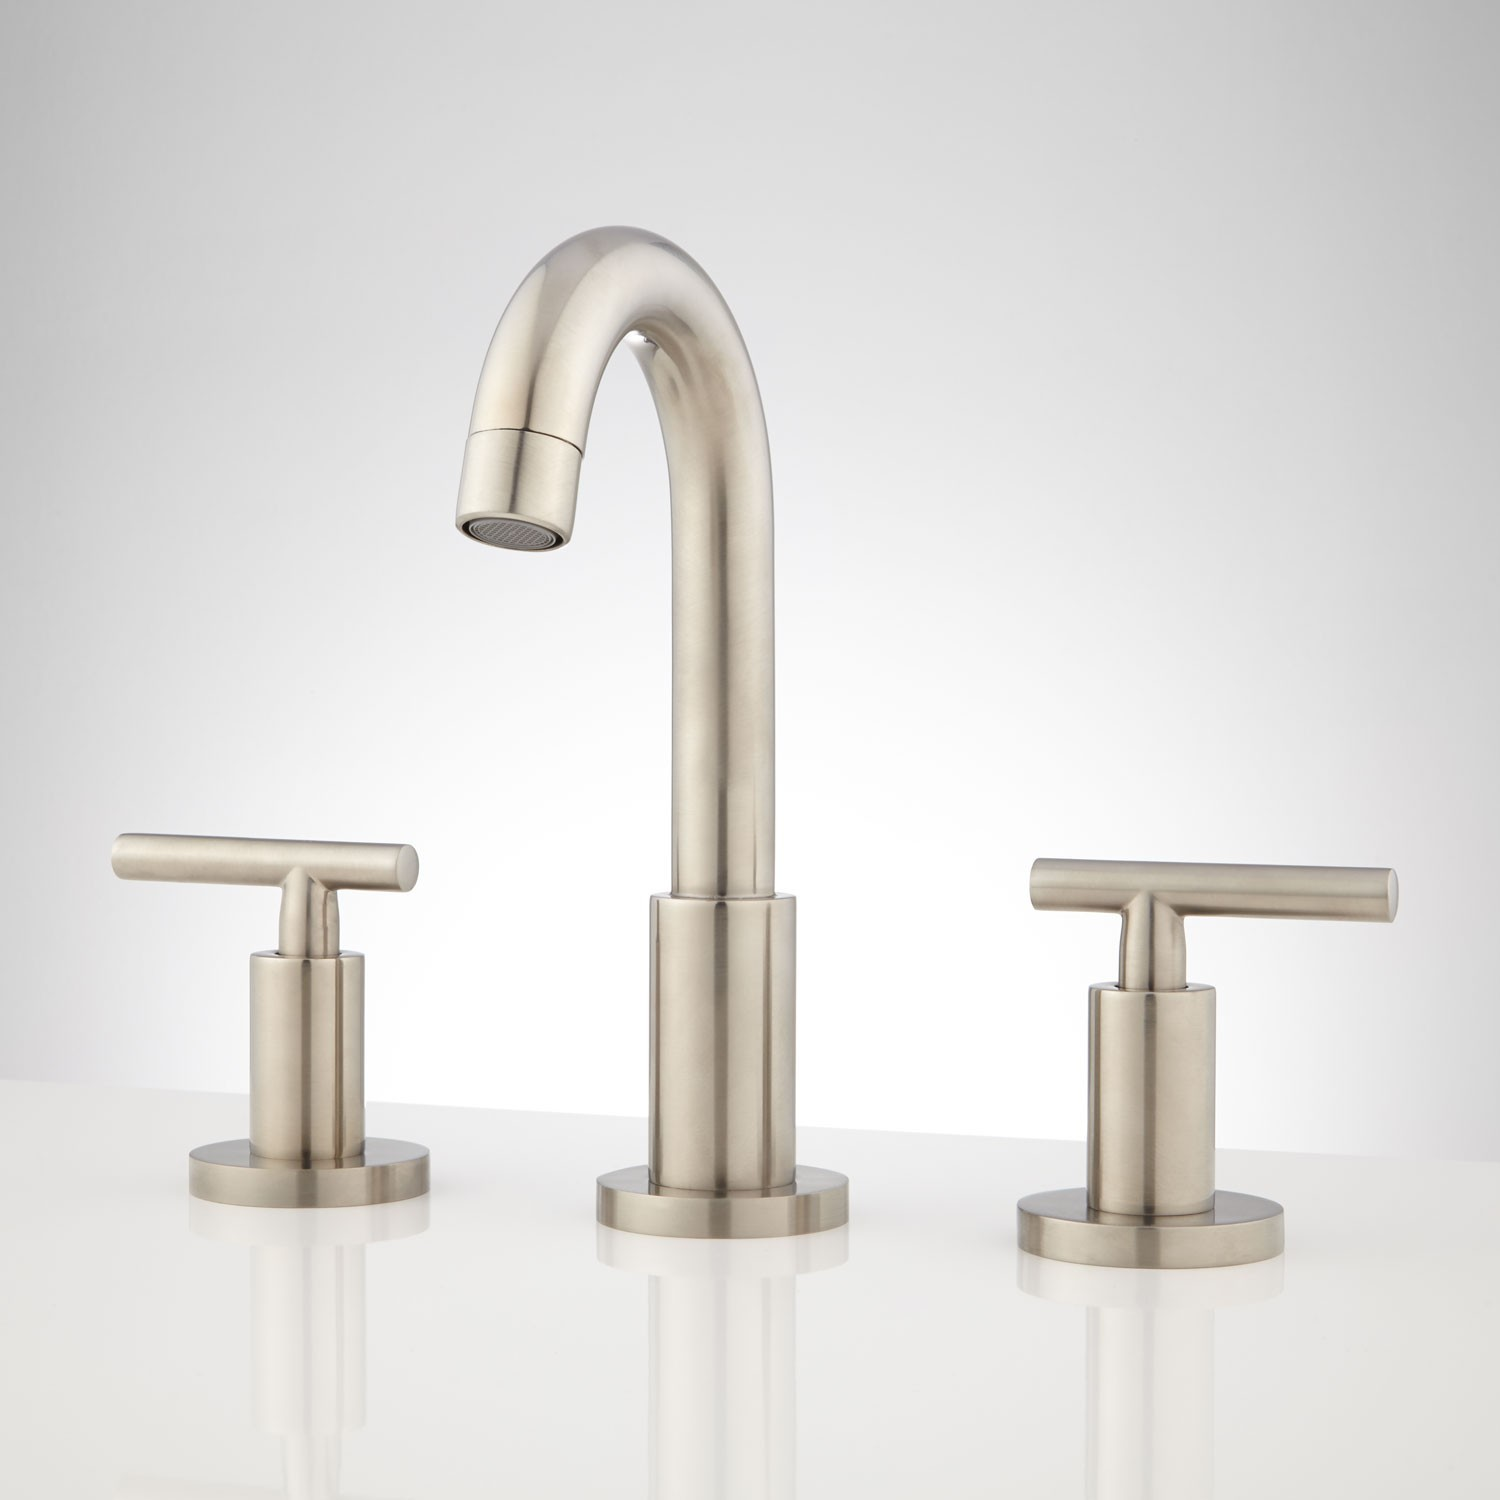 Brushed Nickel Bathroom Faucet Unique Bareva Widespread Bathroom Faucet Bathroom Wallpaper